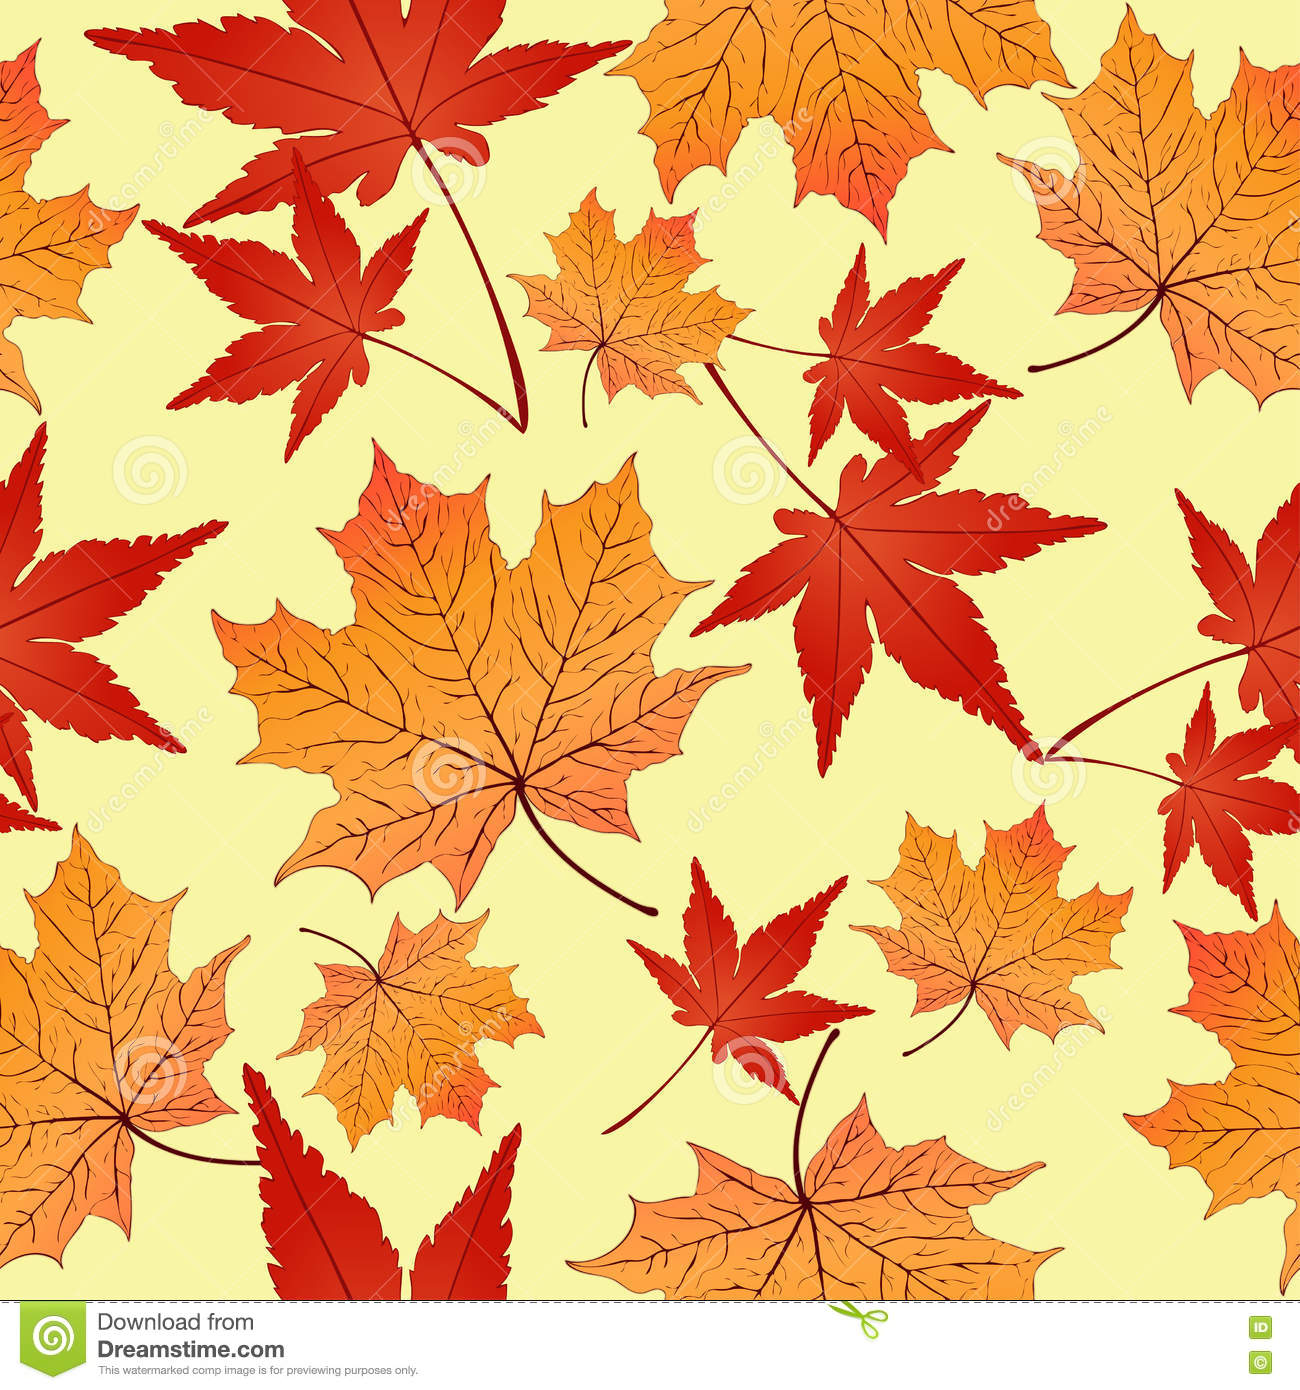 red leaves wallpaper pattern - photo #1